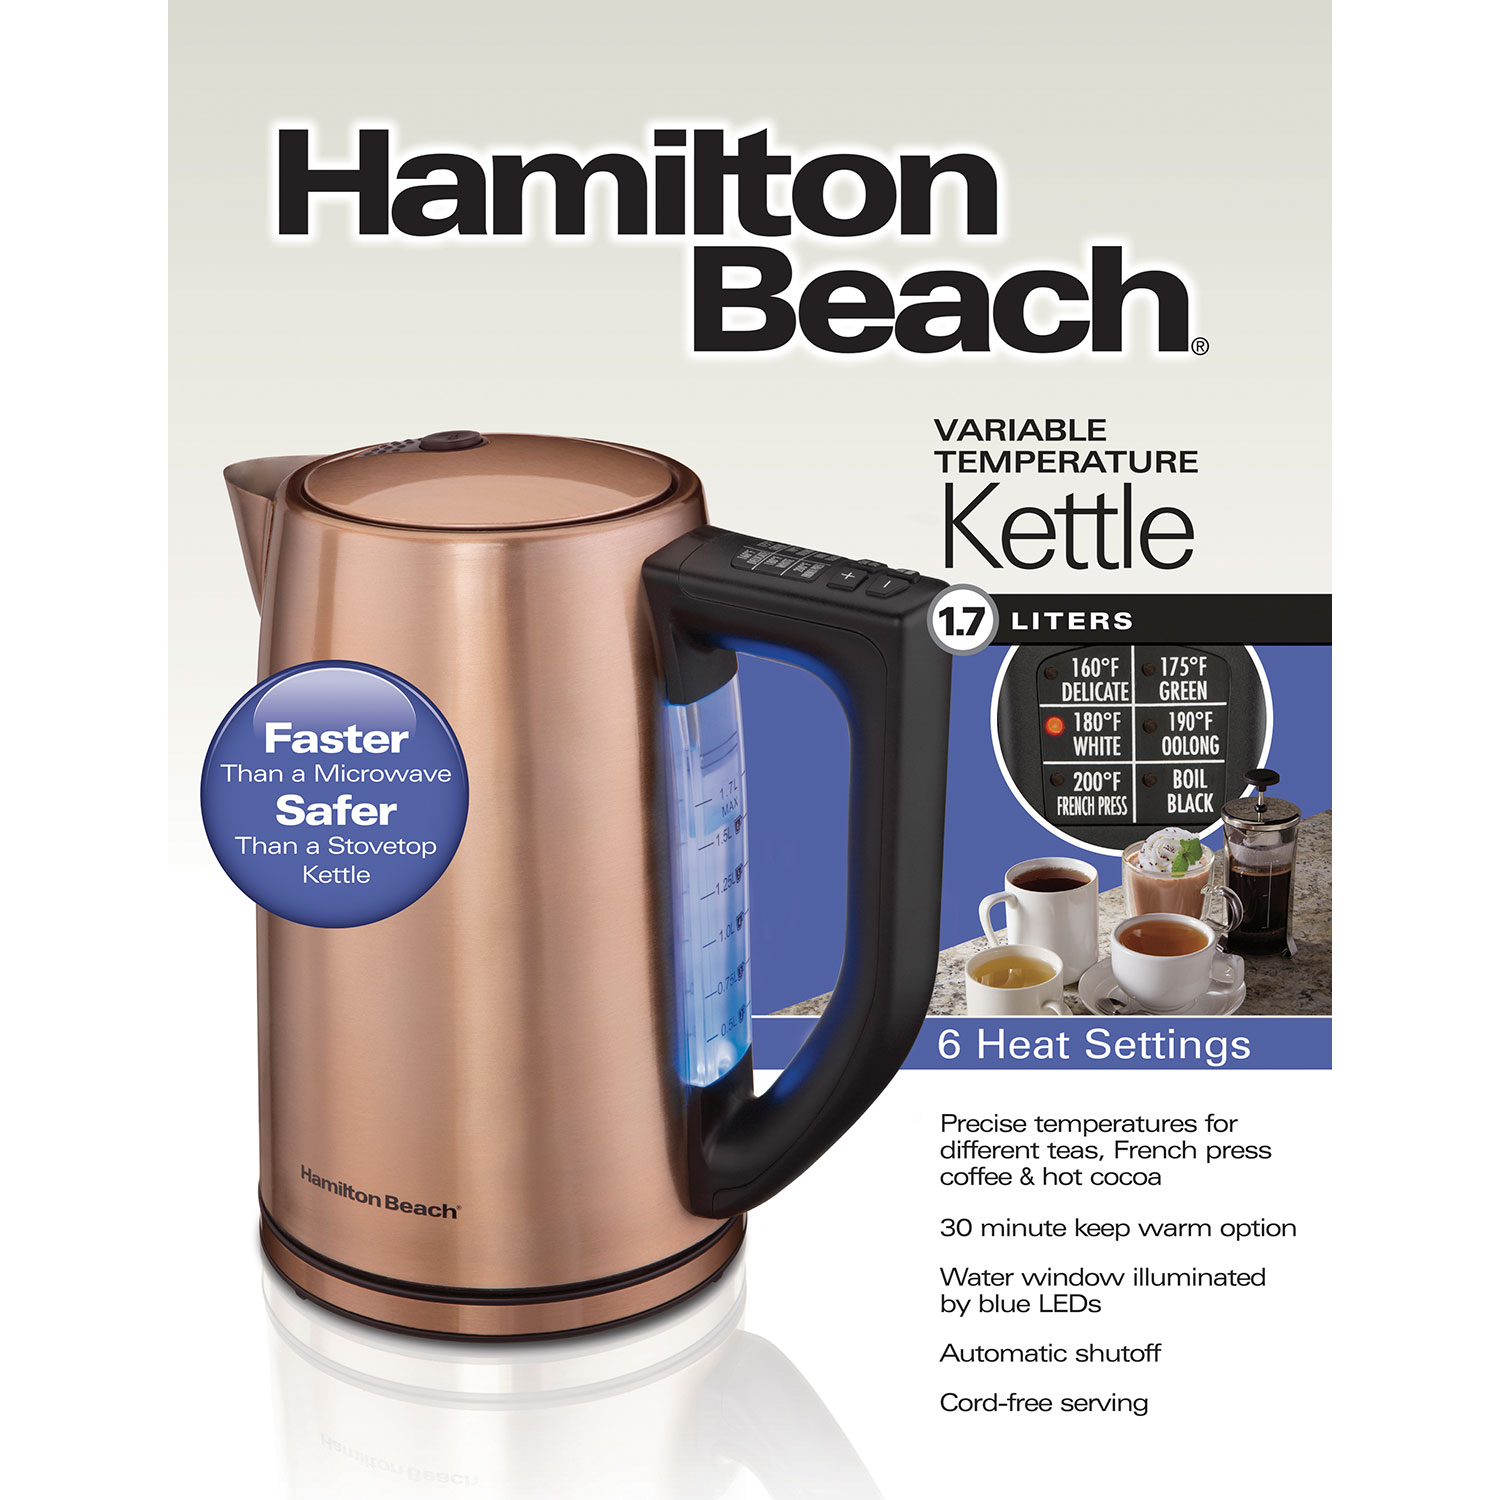 Copper Finish 1.7 Liter Variable Temperature Kettle (41026)